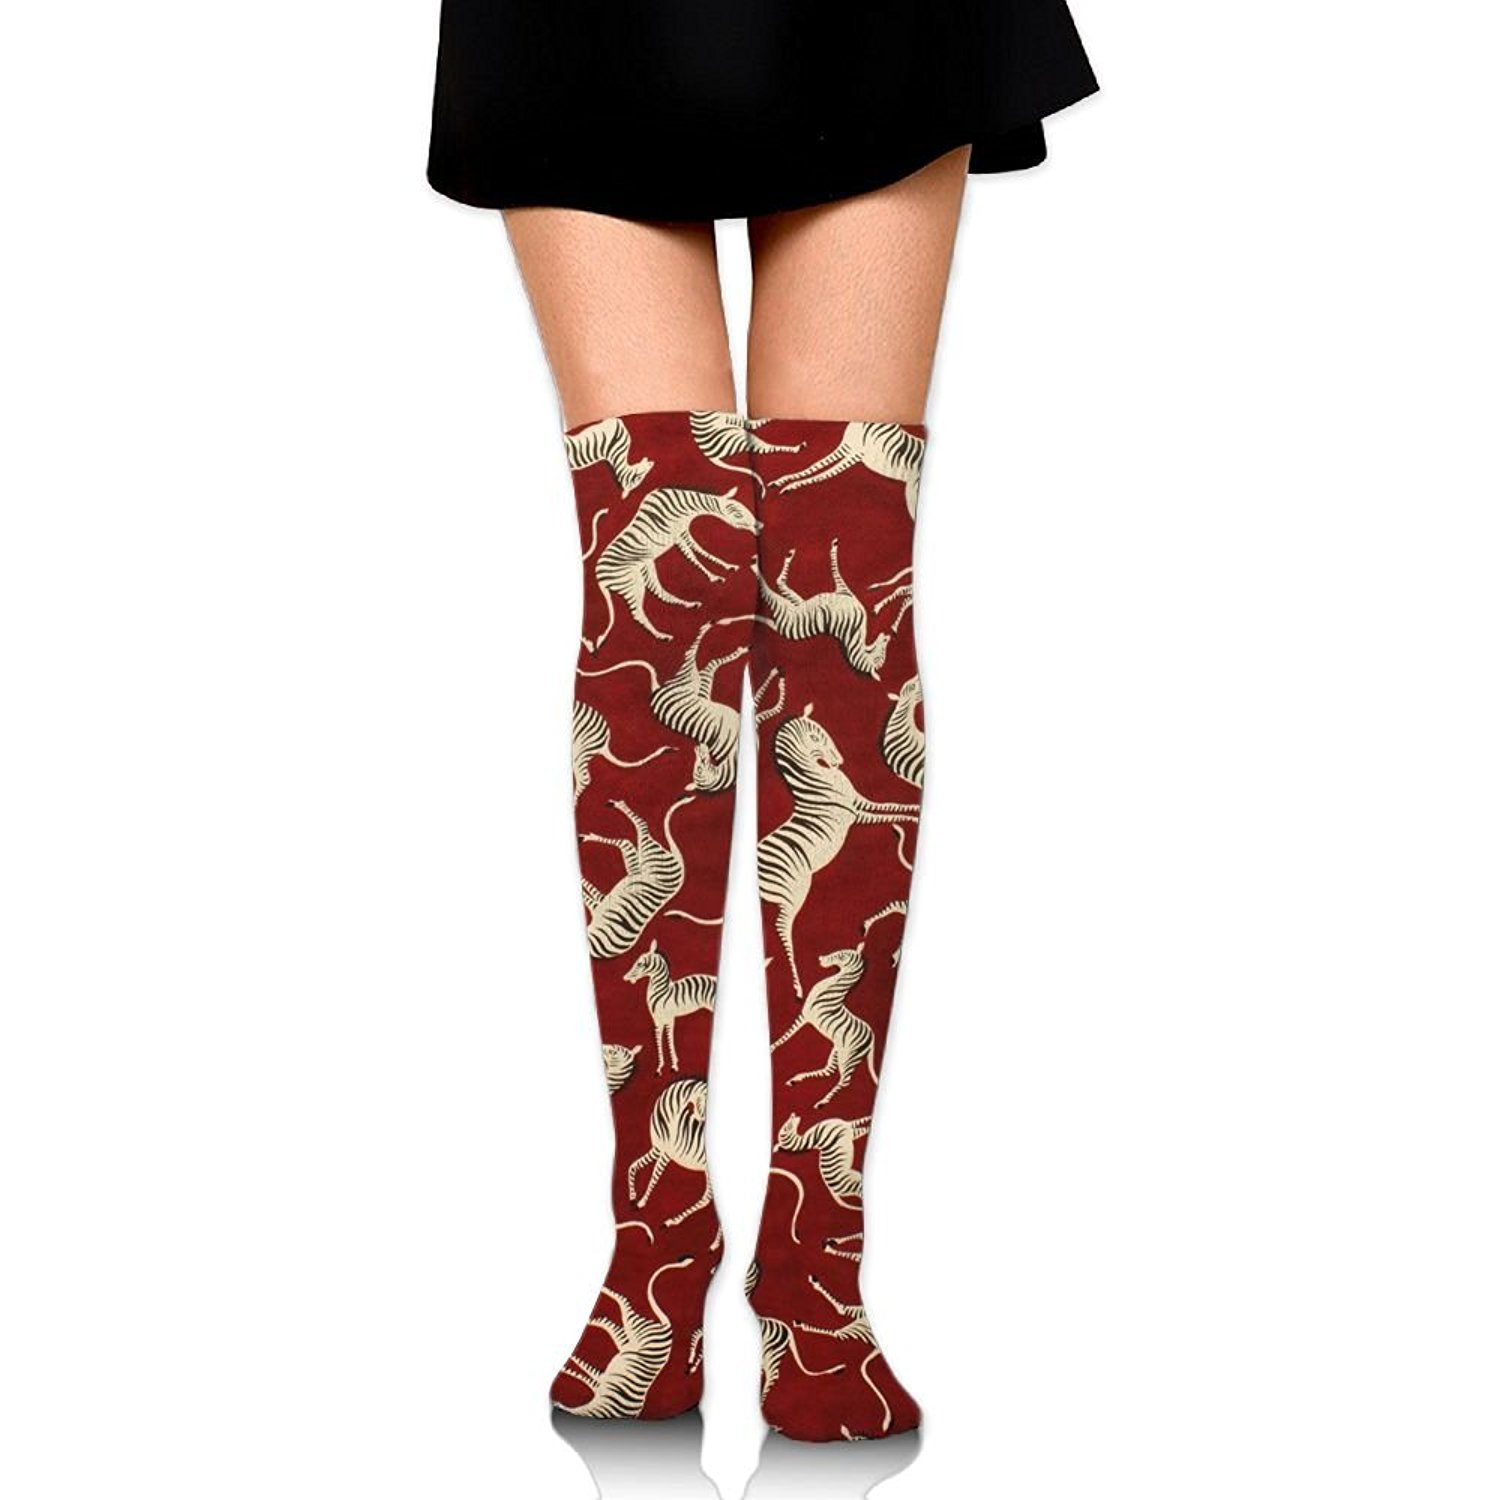 Zaqxsw Zebra Animal Women Cool Thigh High Socks Thermal Socks For Ladies